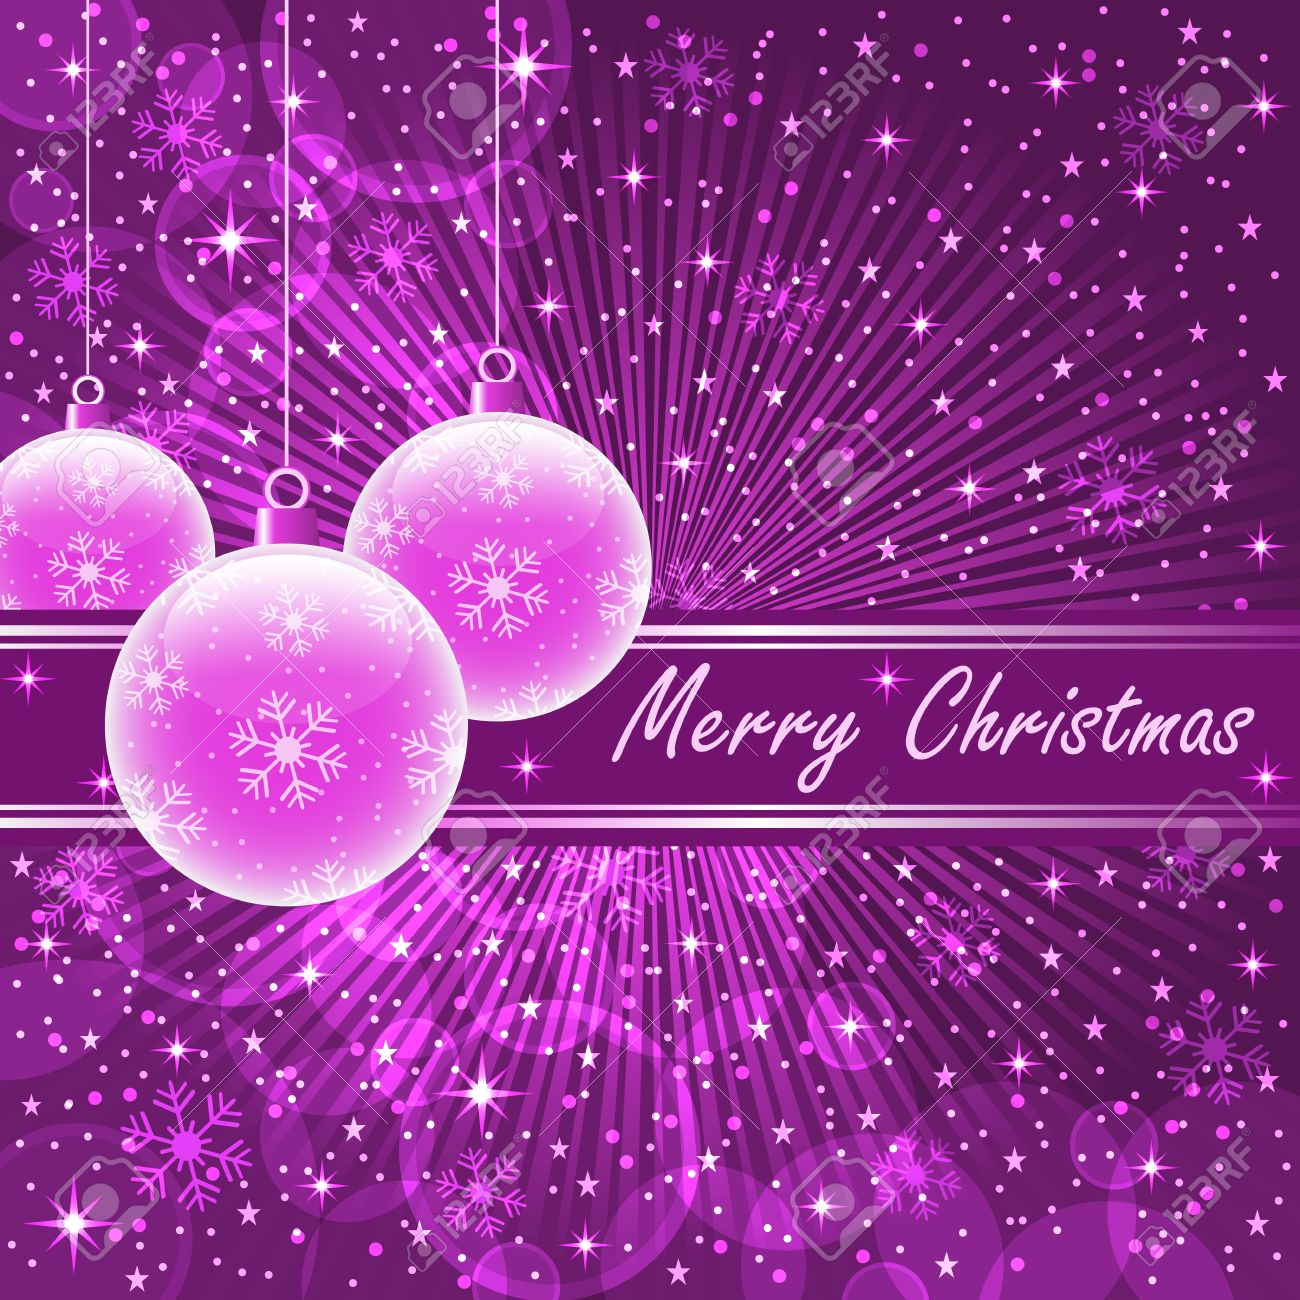 Christmas balls in translucent pink on purple sunburst background, snowflakes, bubbles, stars and snow. Stock Vector - 10597027